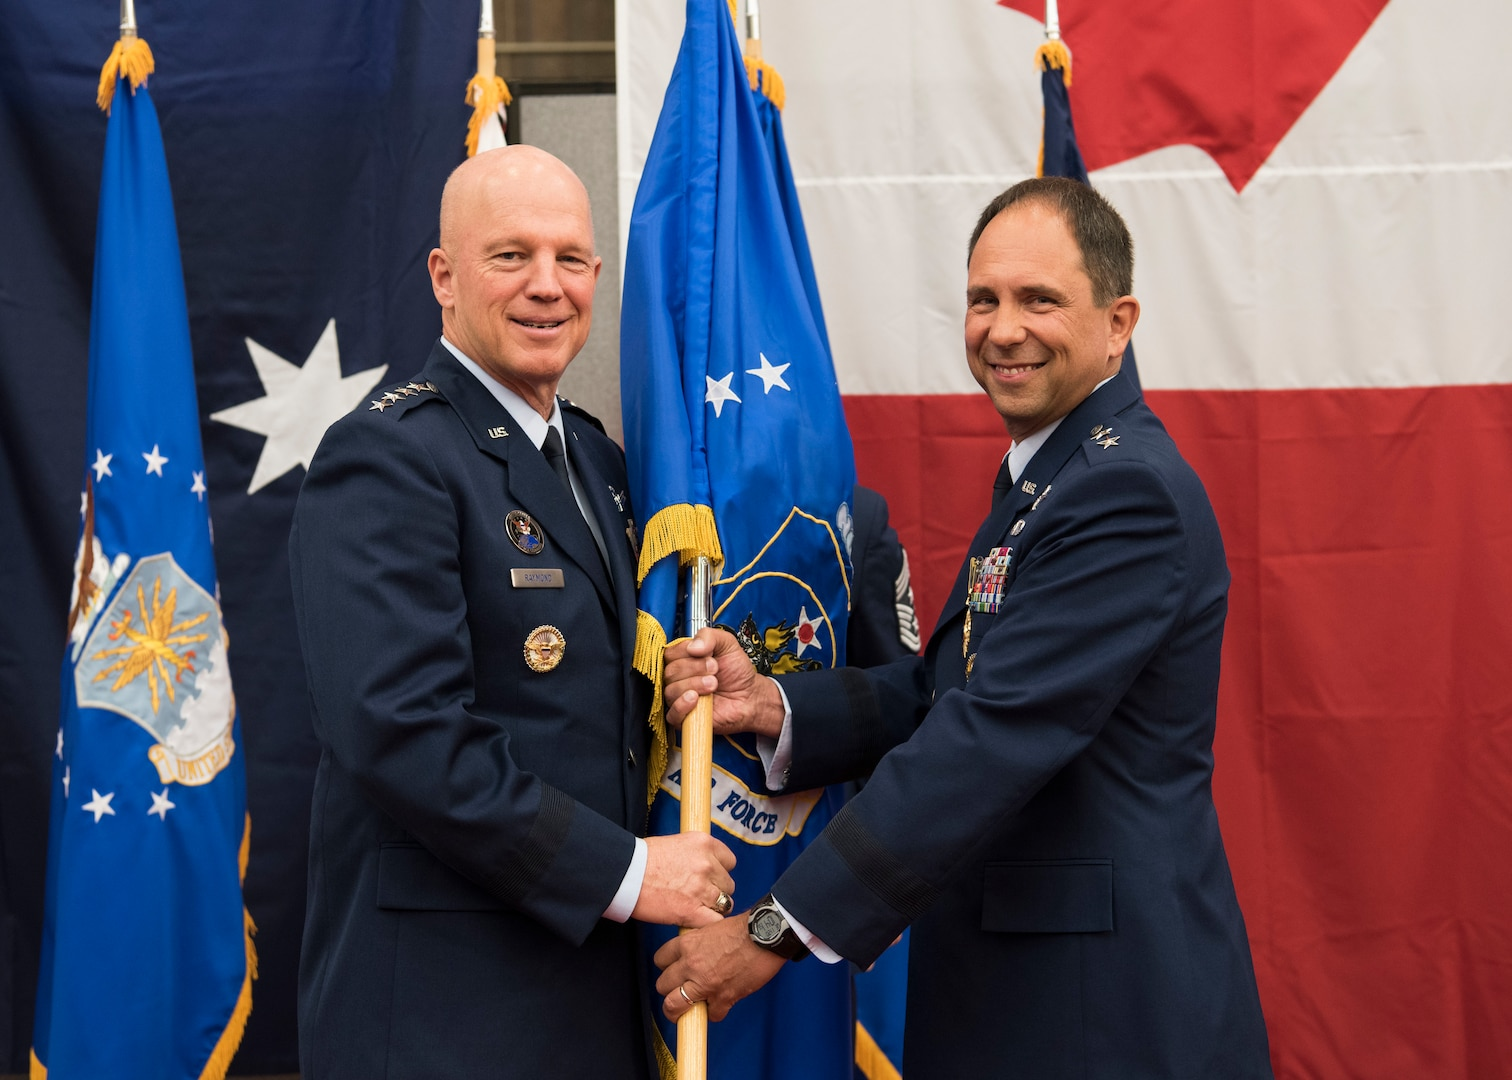 """Gen. John W. """"Jay"""" Raymond, U.S. Space Command and Air Force Space Command commander, presents the 14th Air Force guidon to Maj. Gen. John. E. Shaw, Combined Force Space Component Command and 14th AF commander, during a change of commander ceremony Nov. 20, 2019, at Vandenberg Air Force Base, Calif. As the Air Force's sole numbered Air Force for space, 14th AF is responsible for the organization, training, equipping, command and control and employment of Air Force space forces to support operational plans and missions for U.S. combatant commanders and air component commanders. (U.S. Air Force photo by Airman 1st Class Aubree Milks)"""